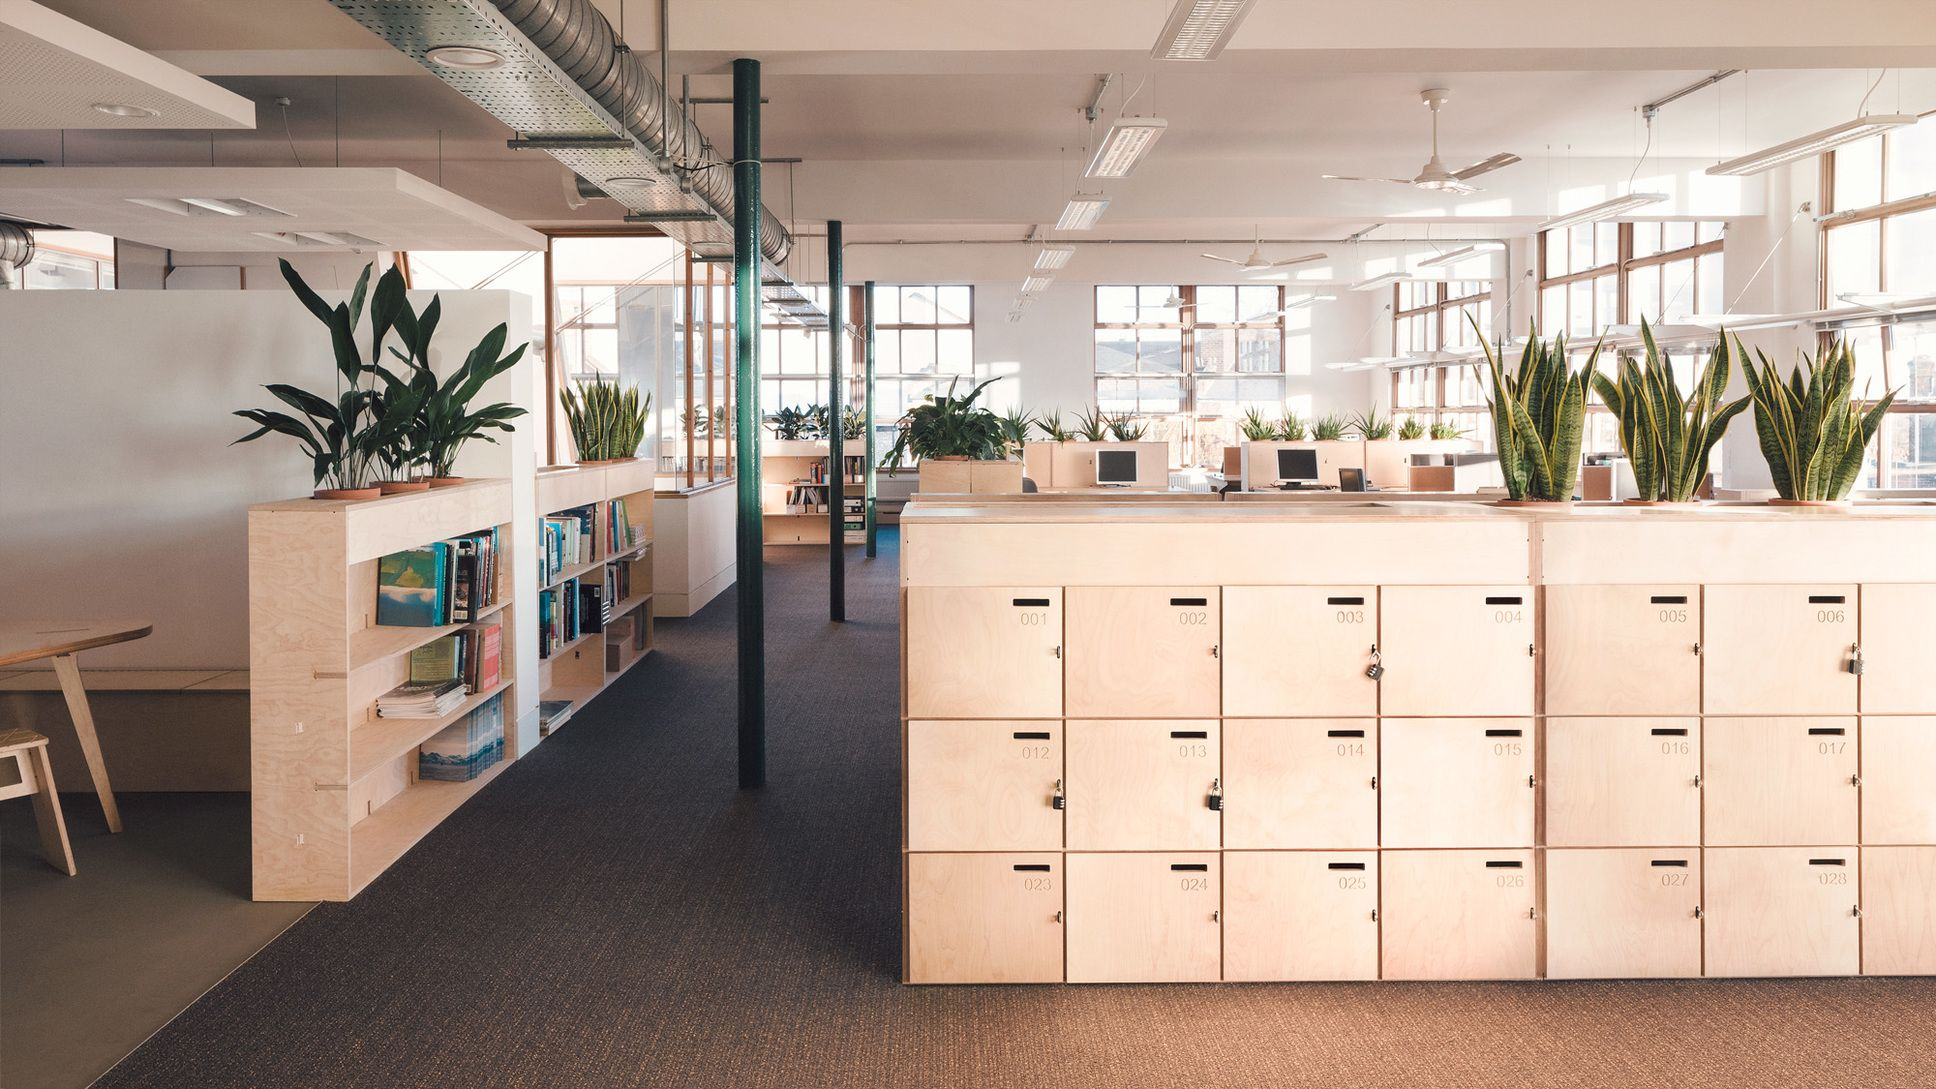 Workspace Furniture for Greenpeace office in London